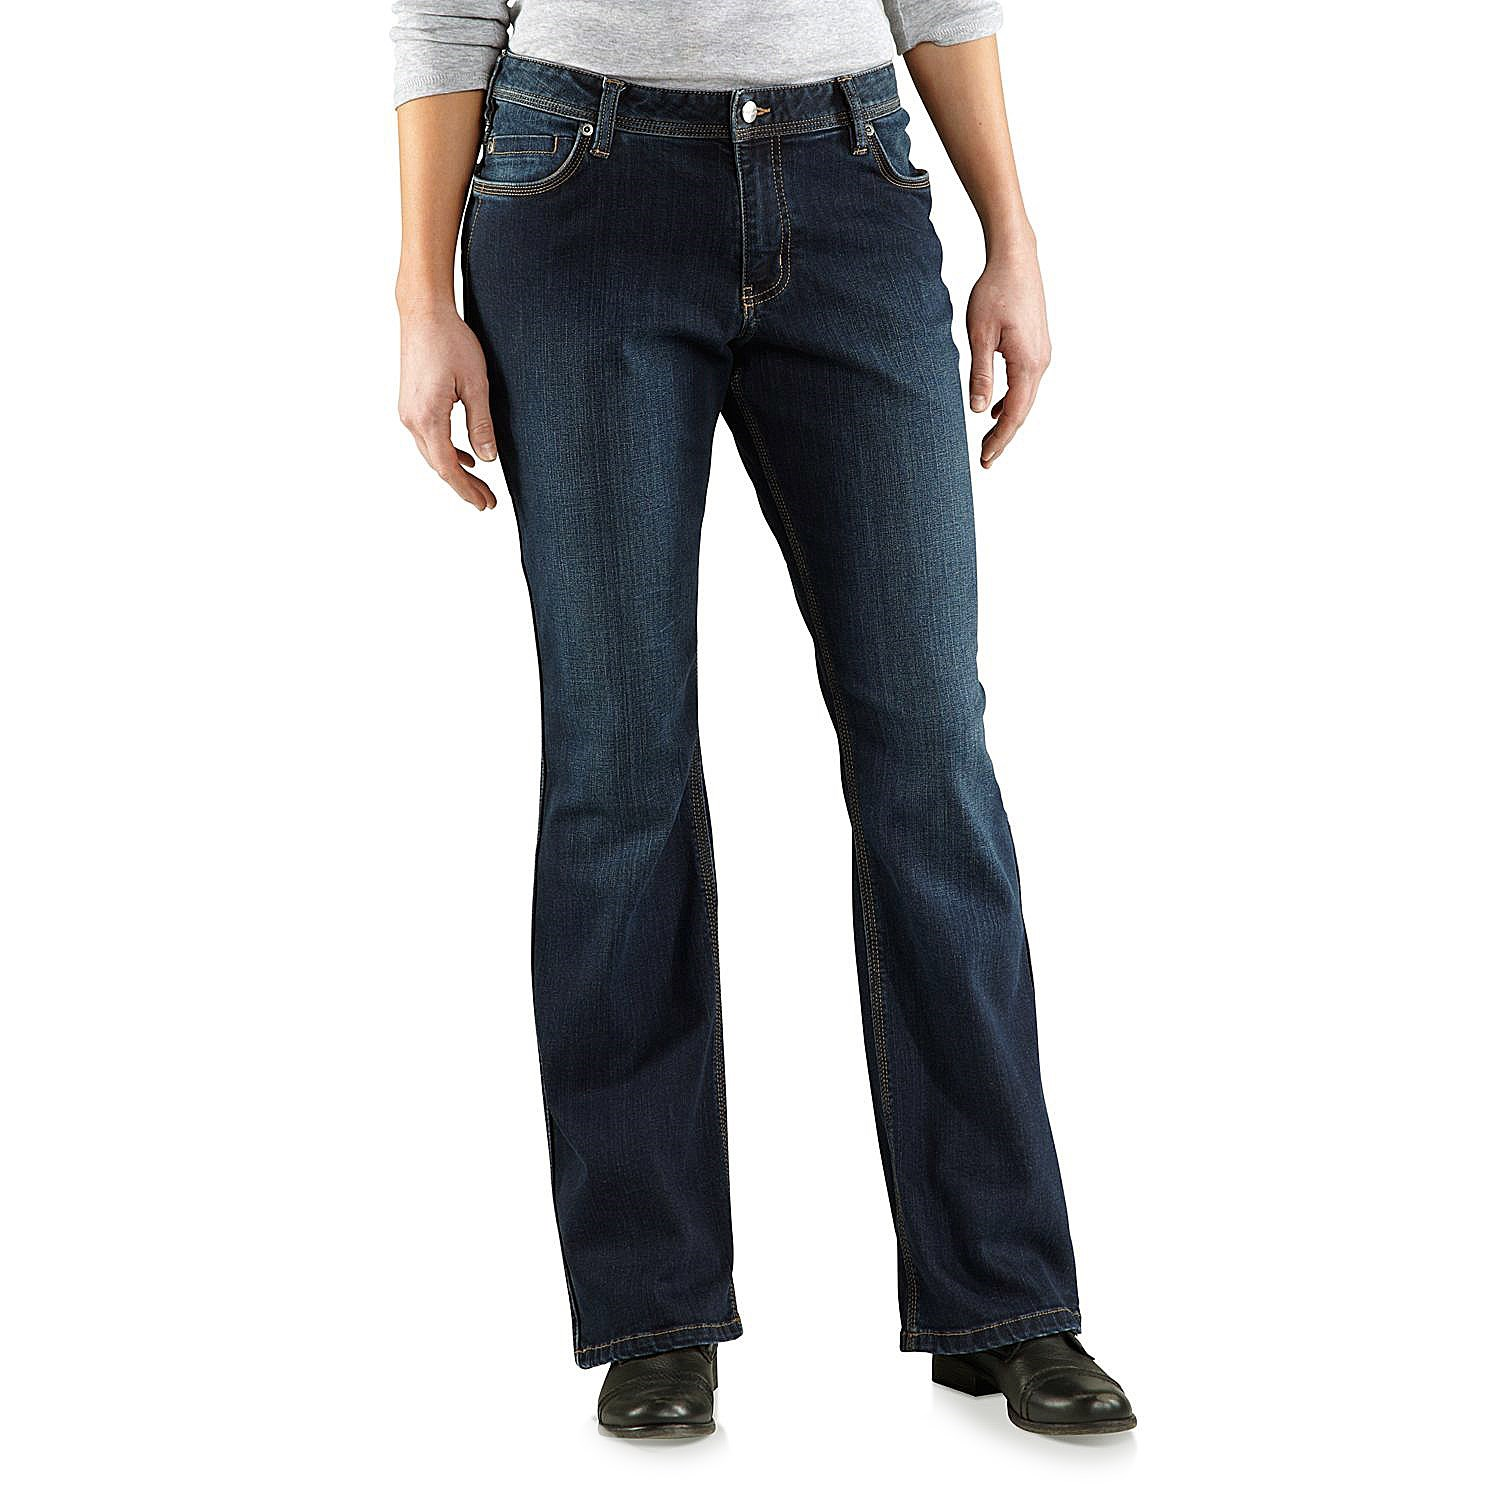 Carhartt Relaxed Fit Jasper Jeans (For Women)